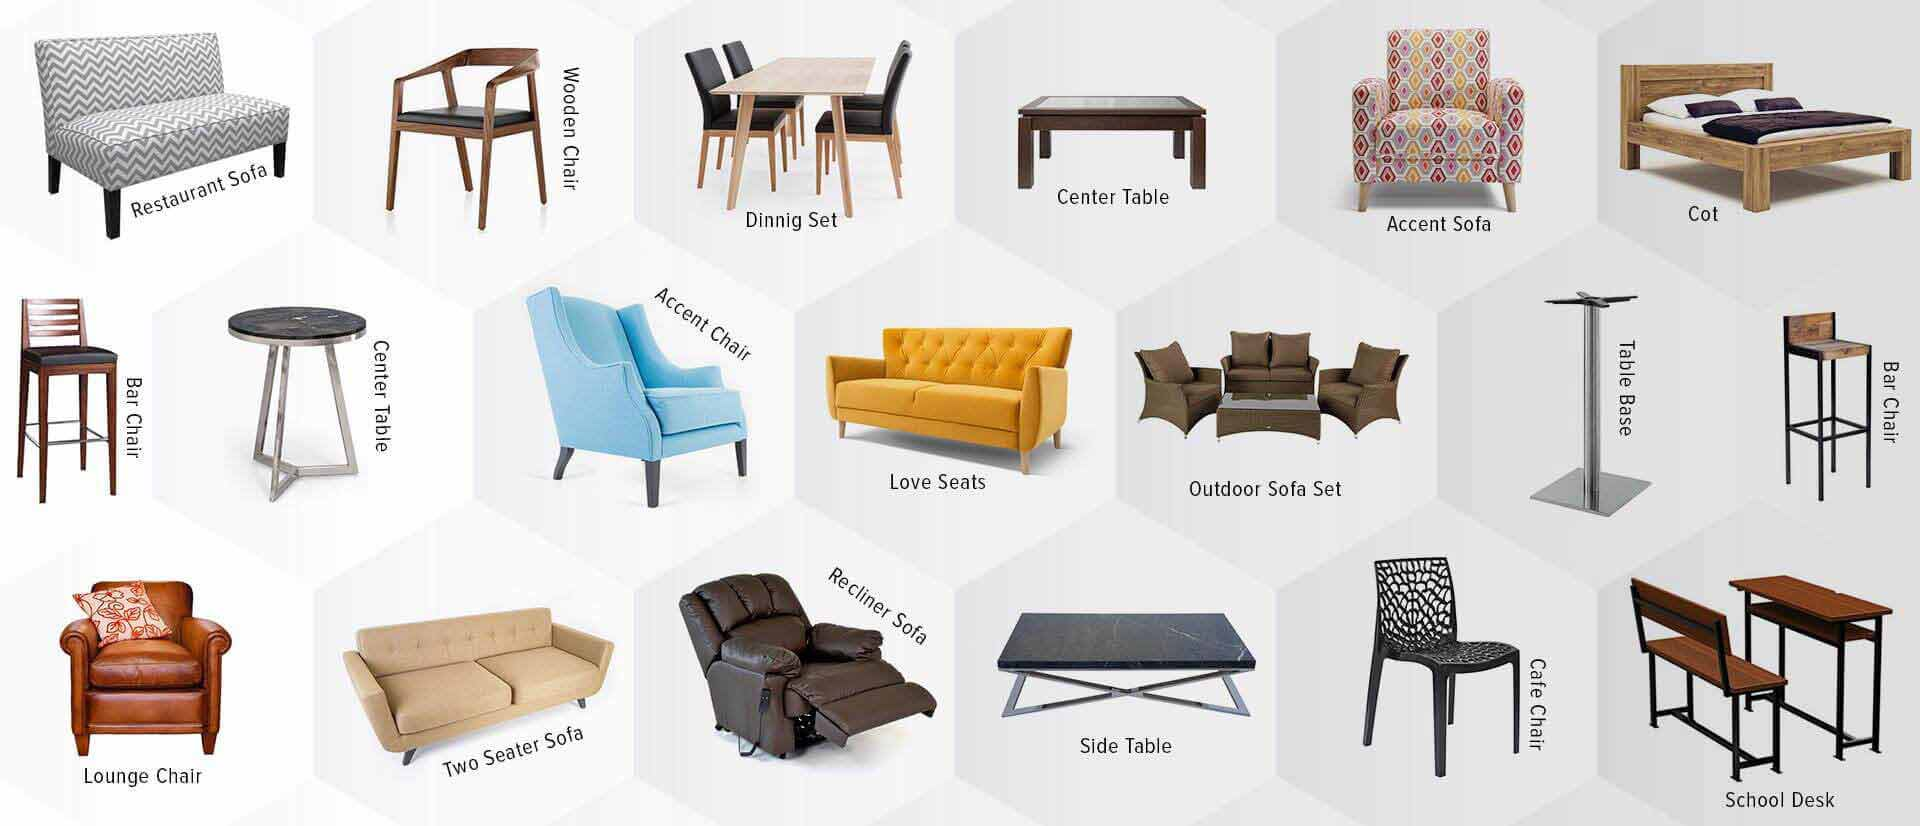 Loose Furniture Manufacturer